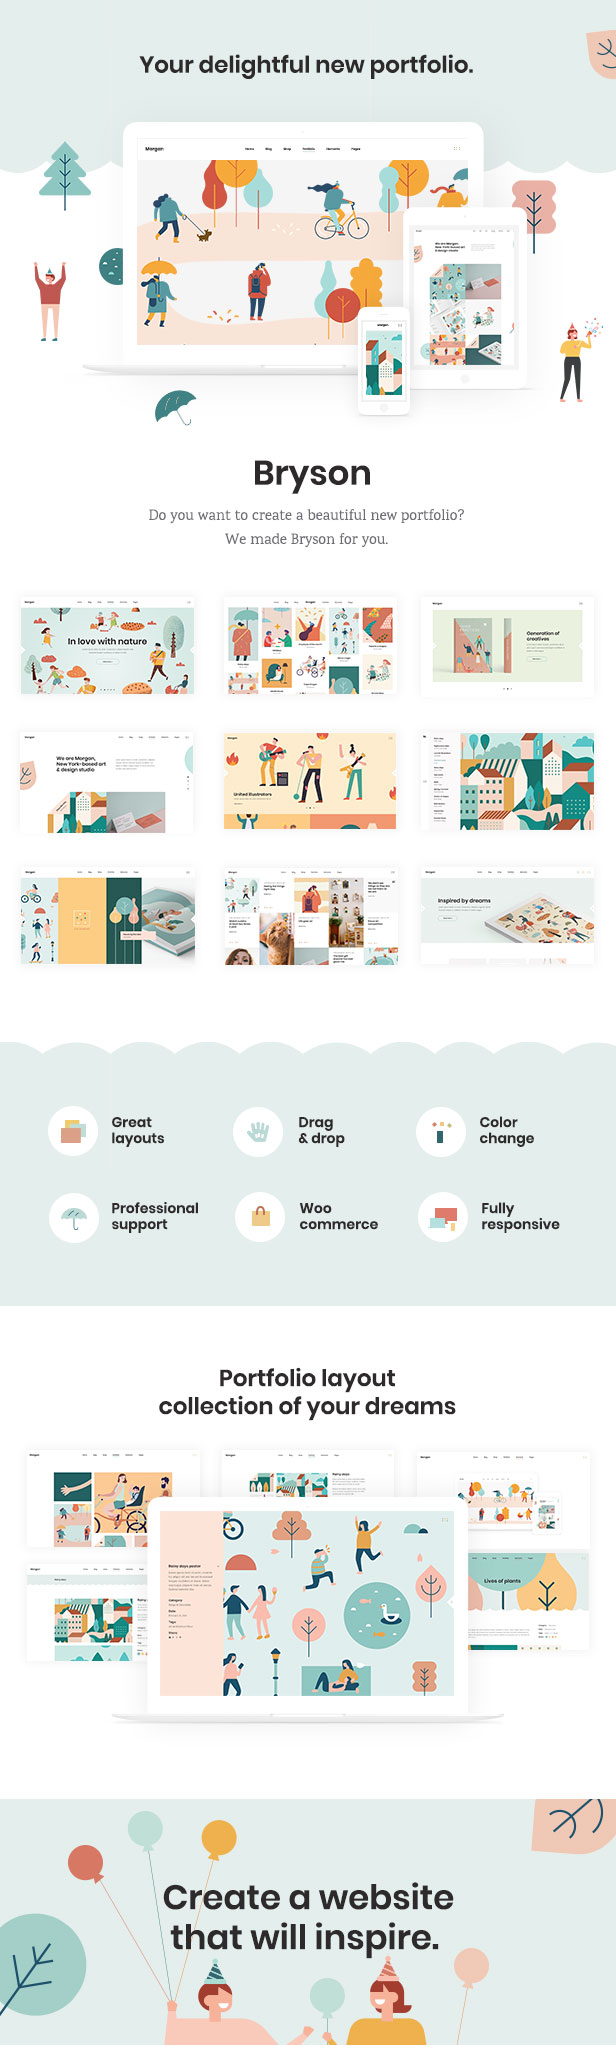 Bryson - Illustration and Design Portfolio Theme - 1